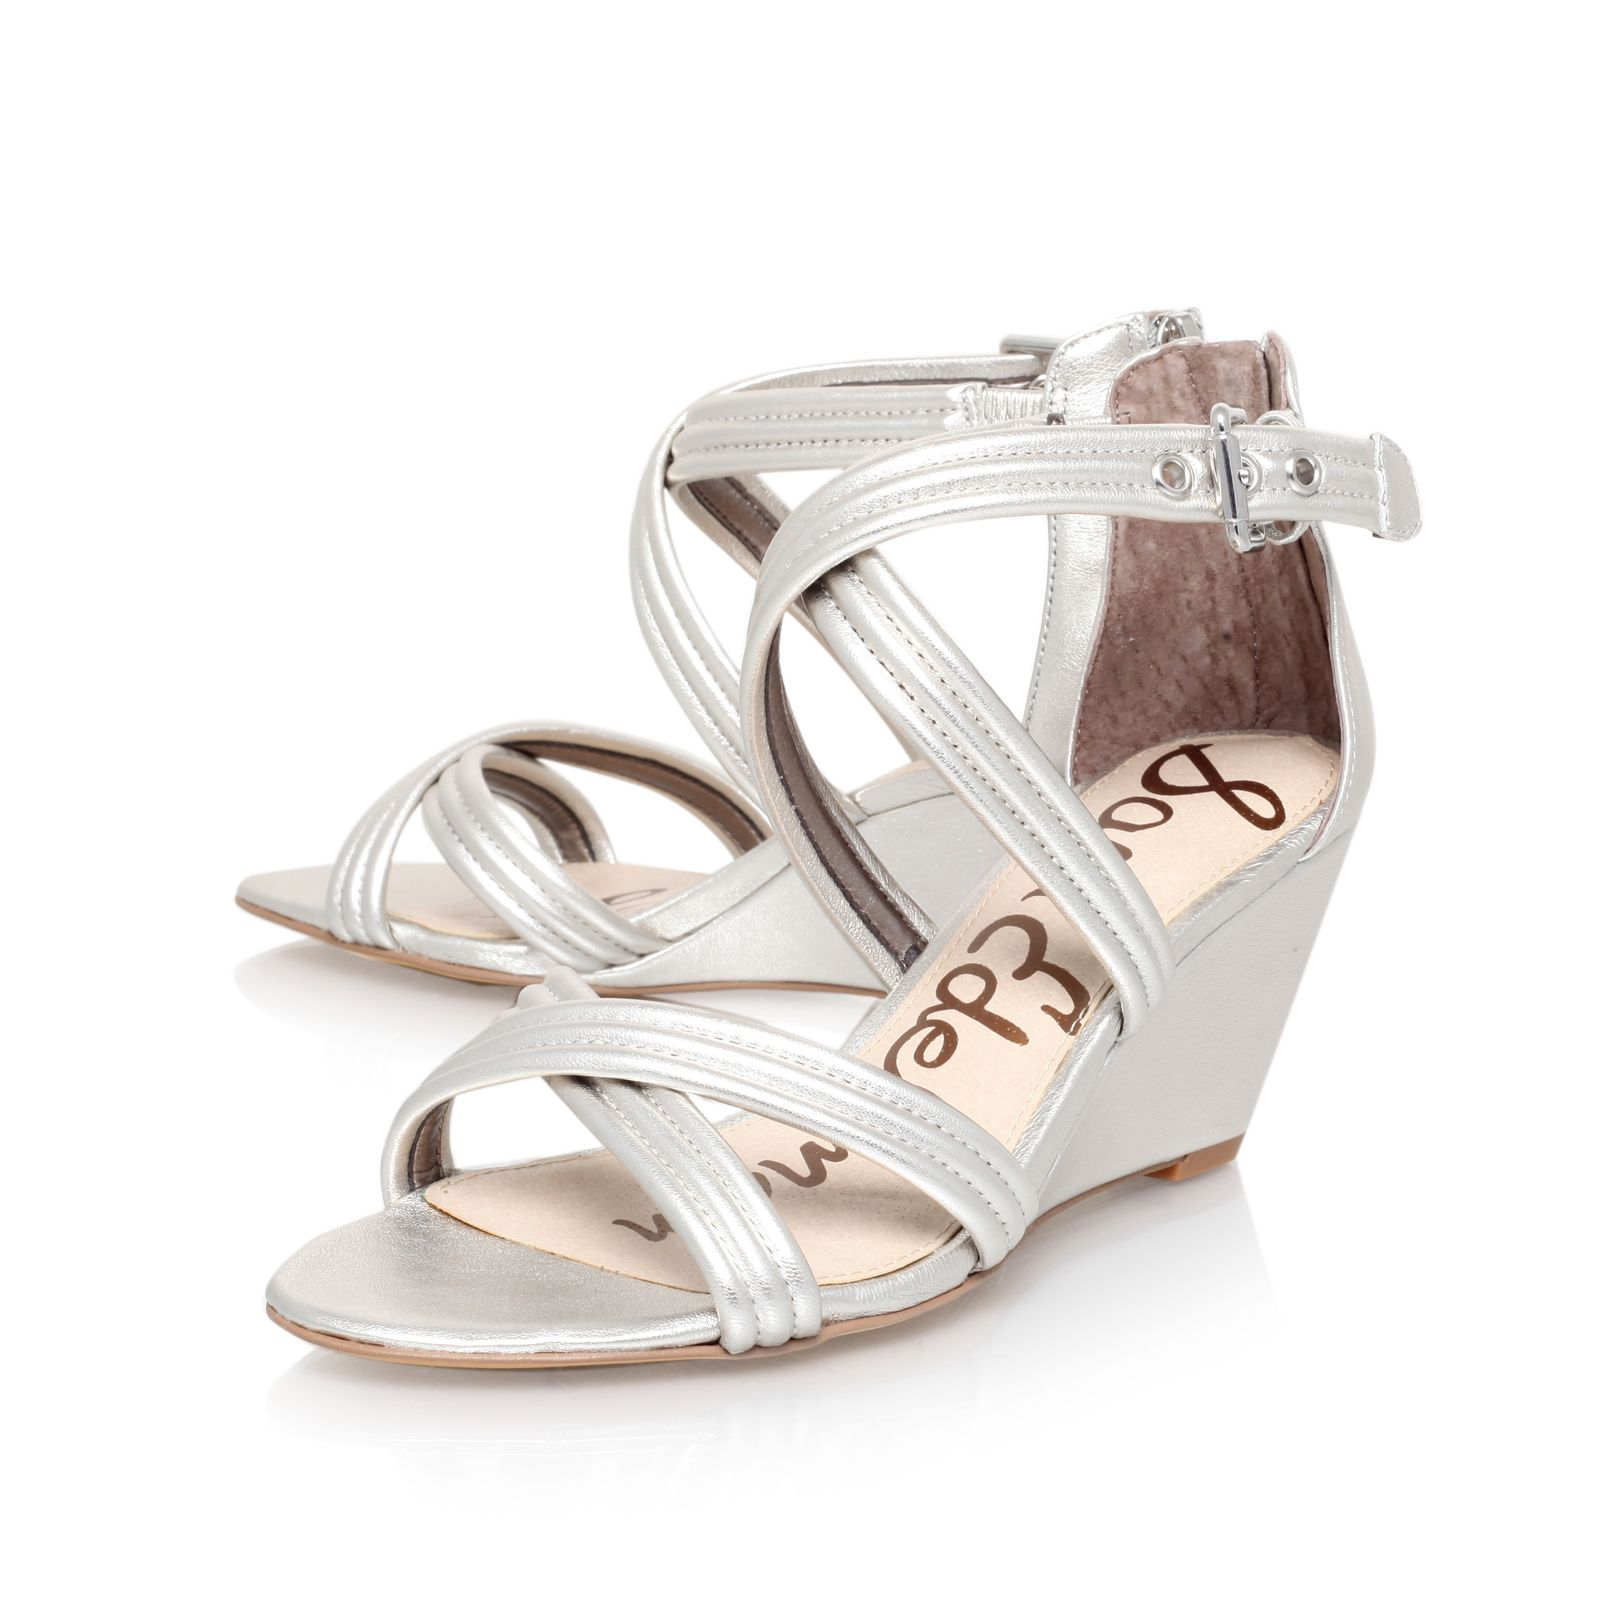 Sloane mid heeled wedge sandals